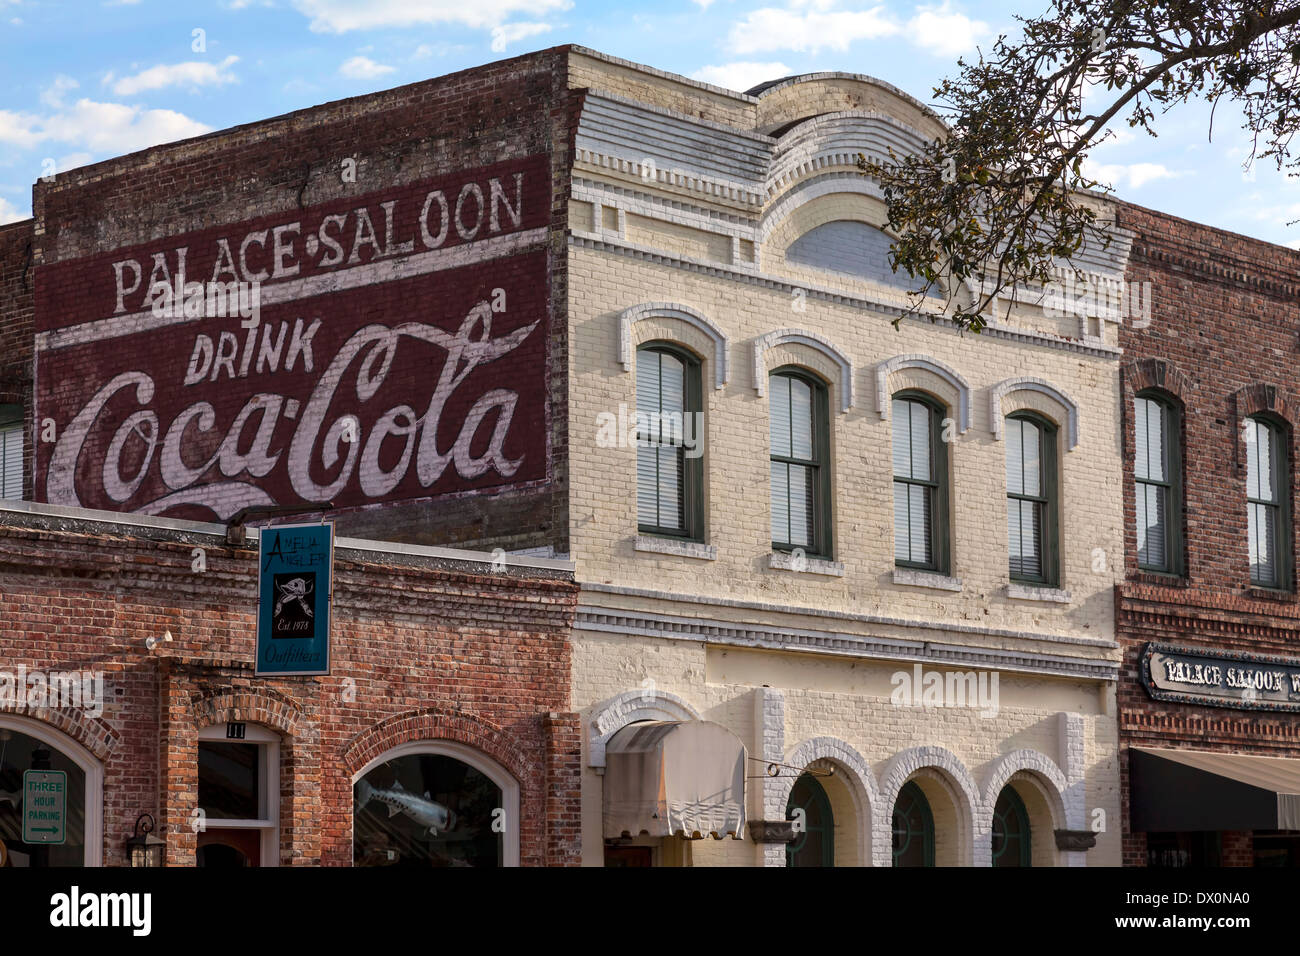 Handpainted Coca Cola sign on exterior brick wall of old building